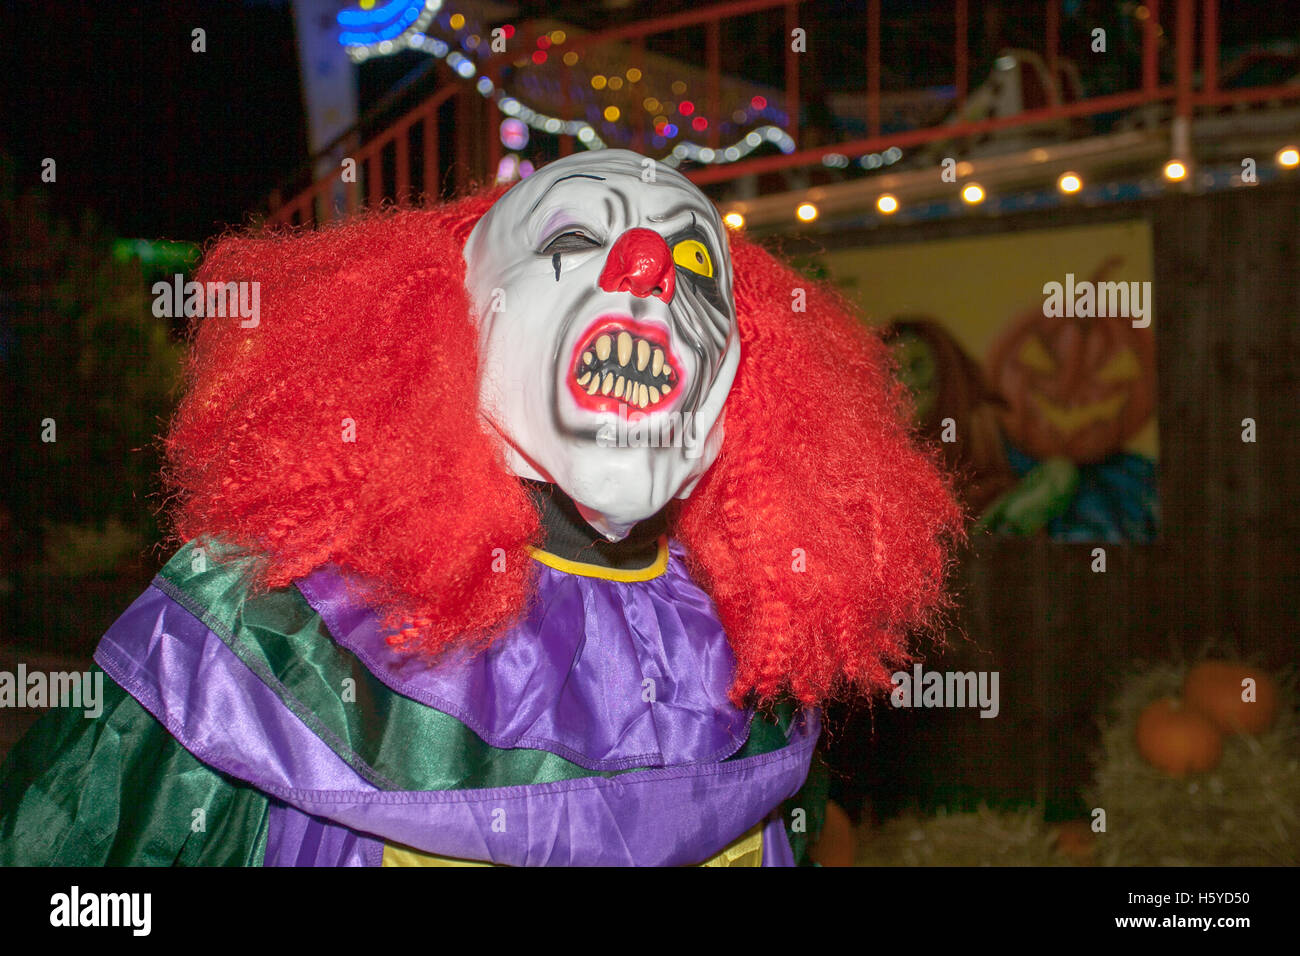 A killer Halloween clown with mask, white face, red hair wig